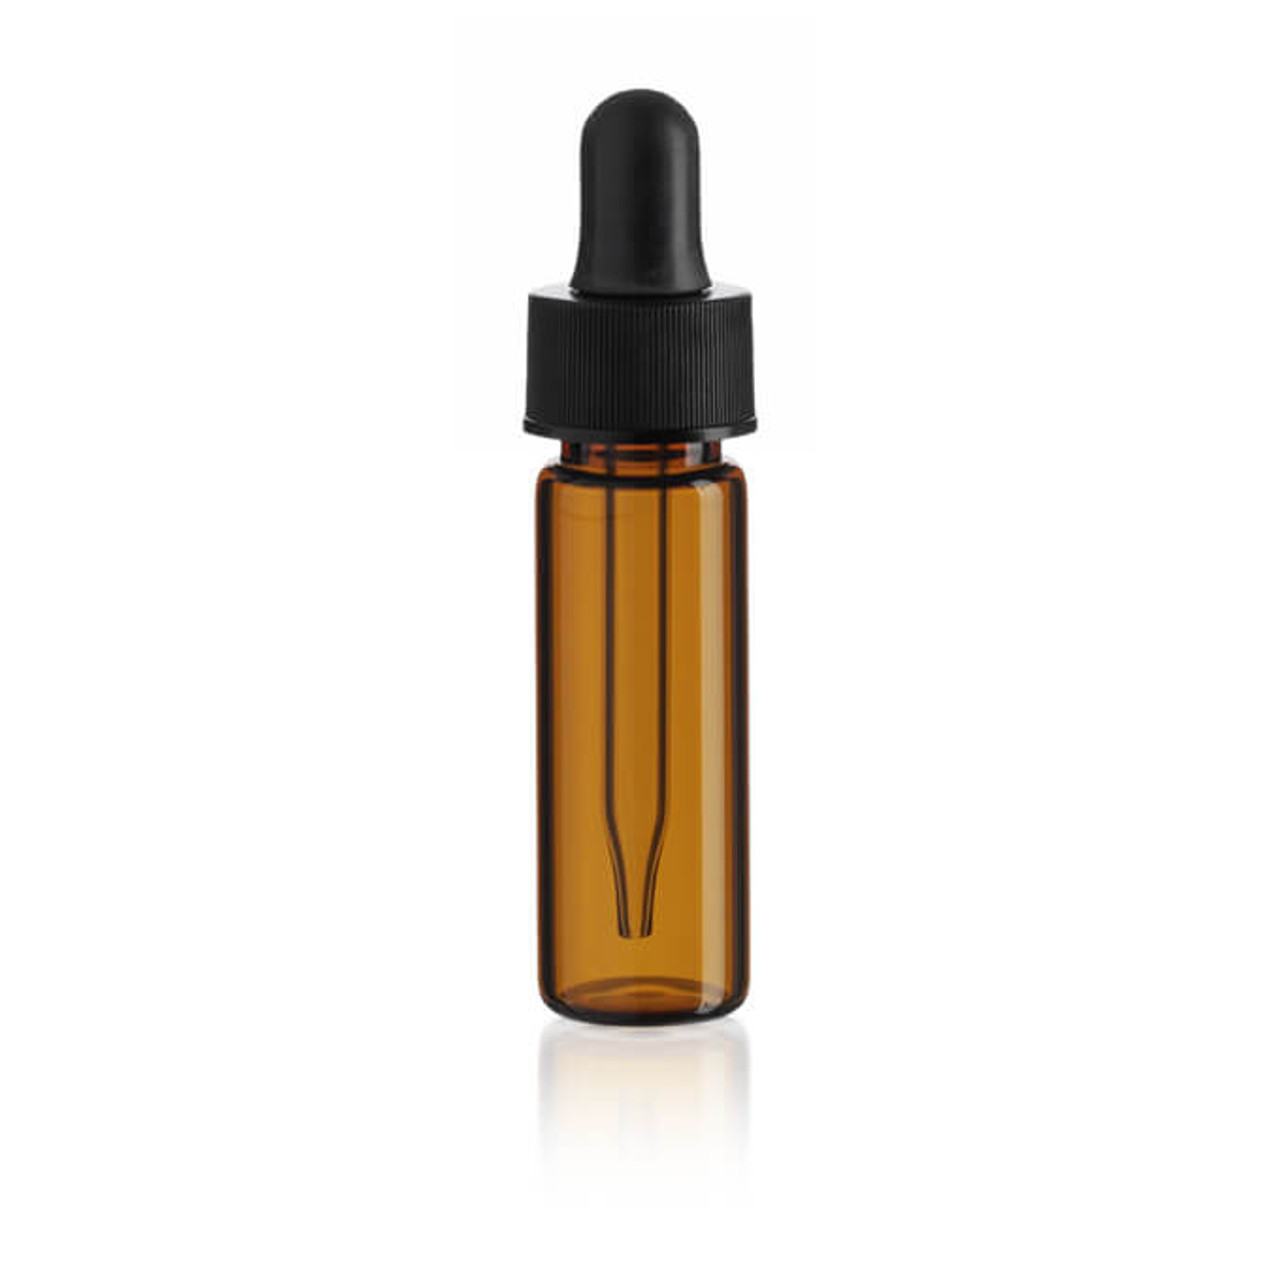 1 dram amber glass vials with dropper